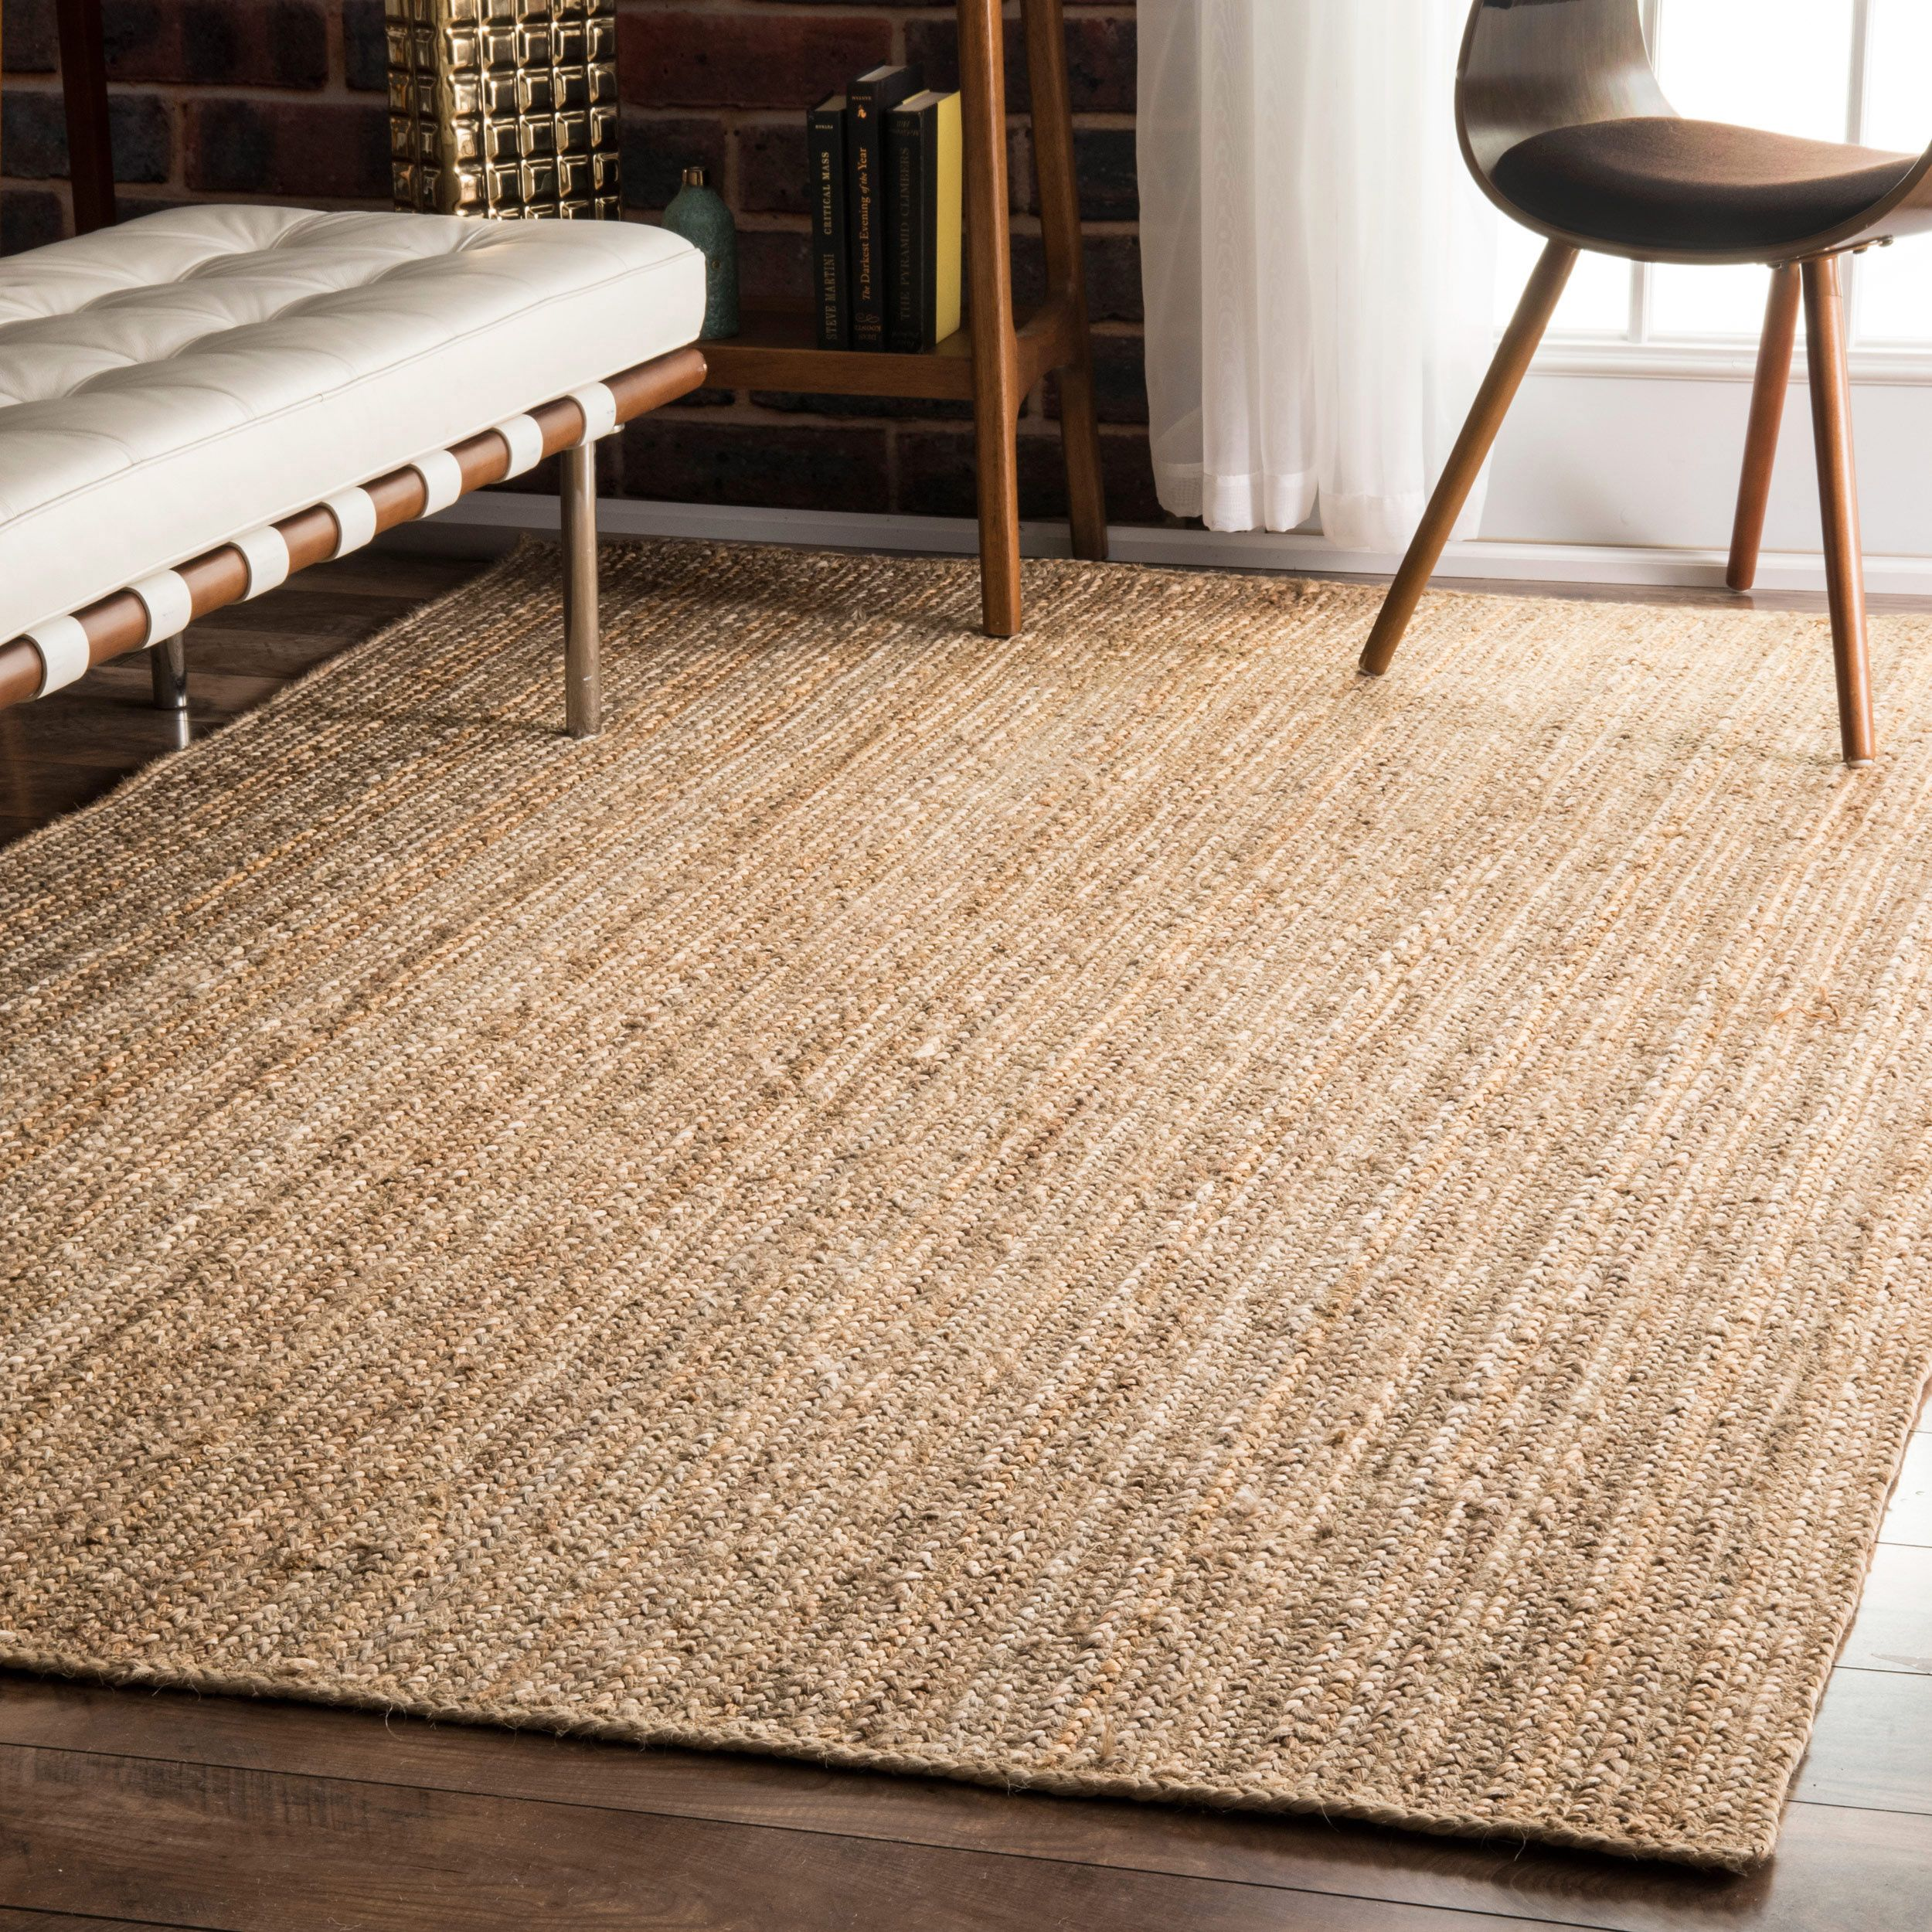 nuloom alexa eco natural fiber braided reversible jute rug (' x '). nuloom alexa eco natural fiber braided reversible jute rug (' x